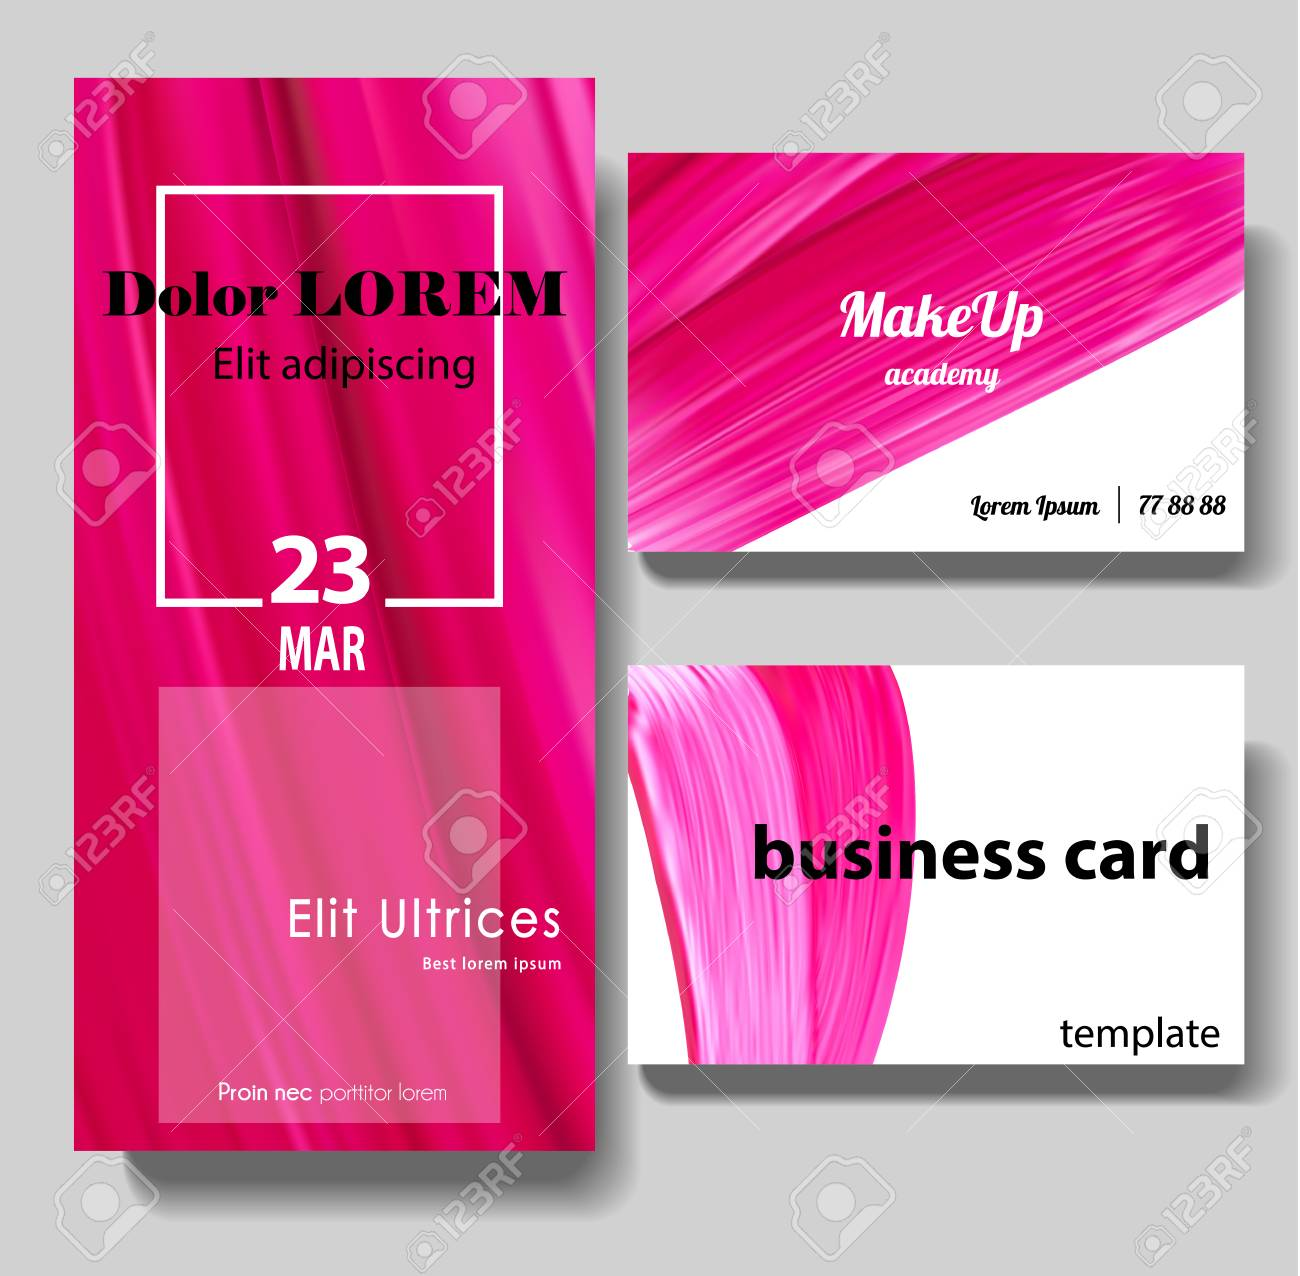 Carte De Visite Maquillage Beaut Flyer Template Pinceau